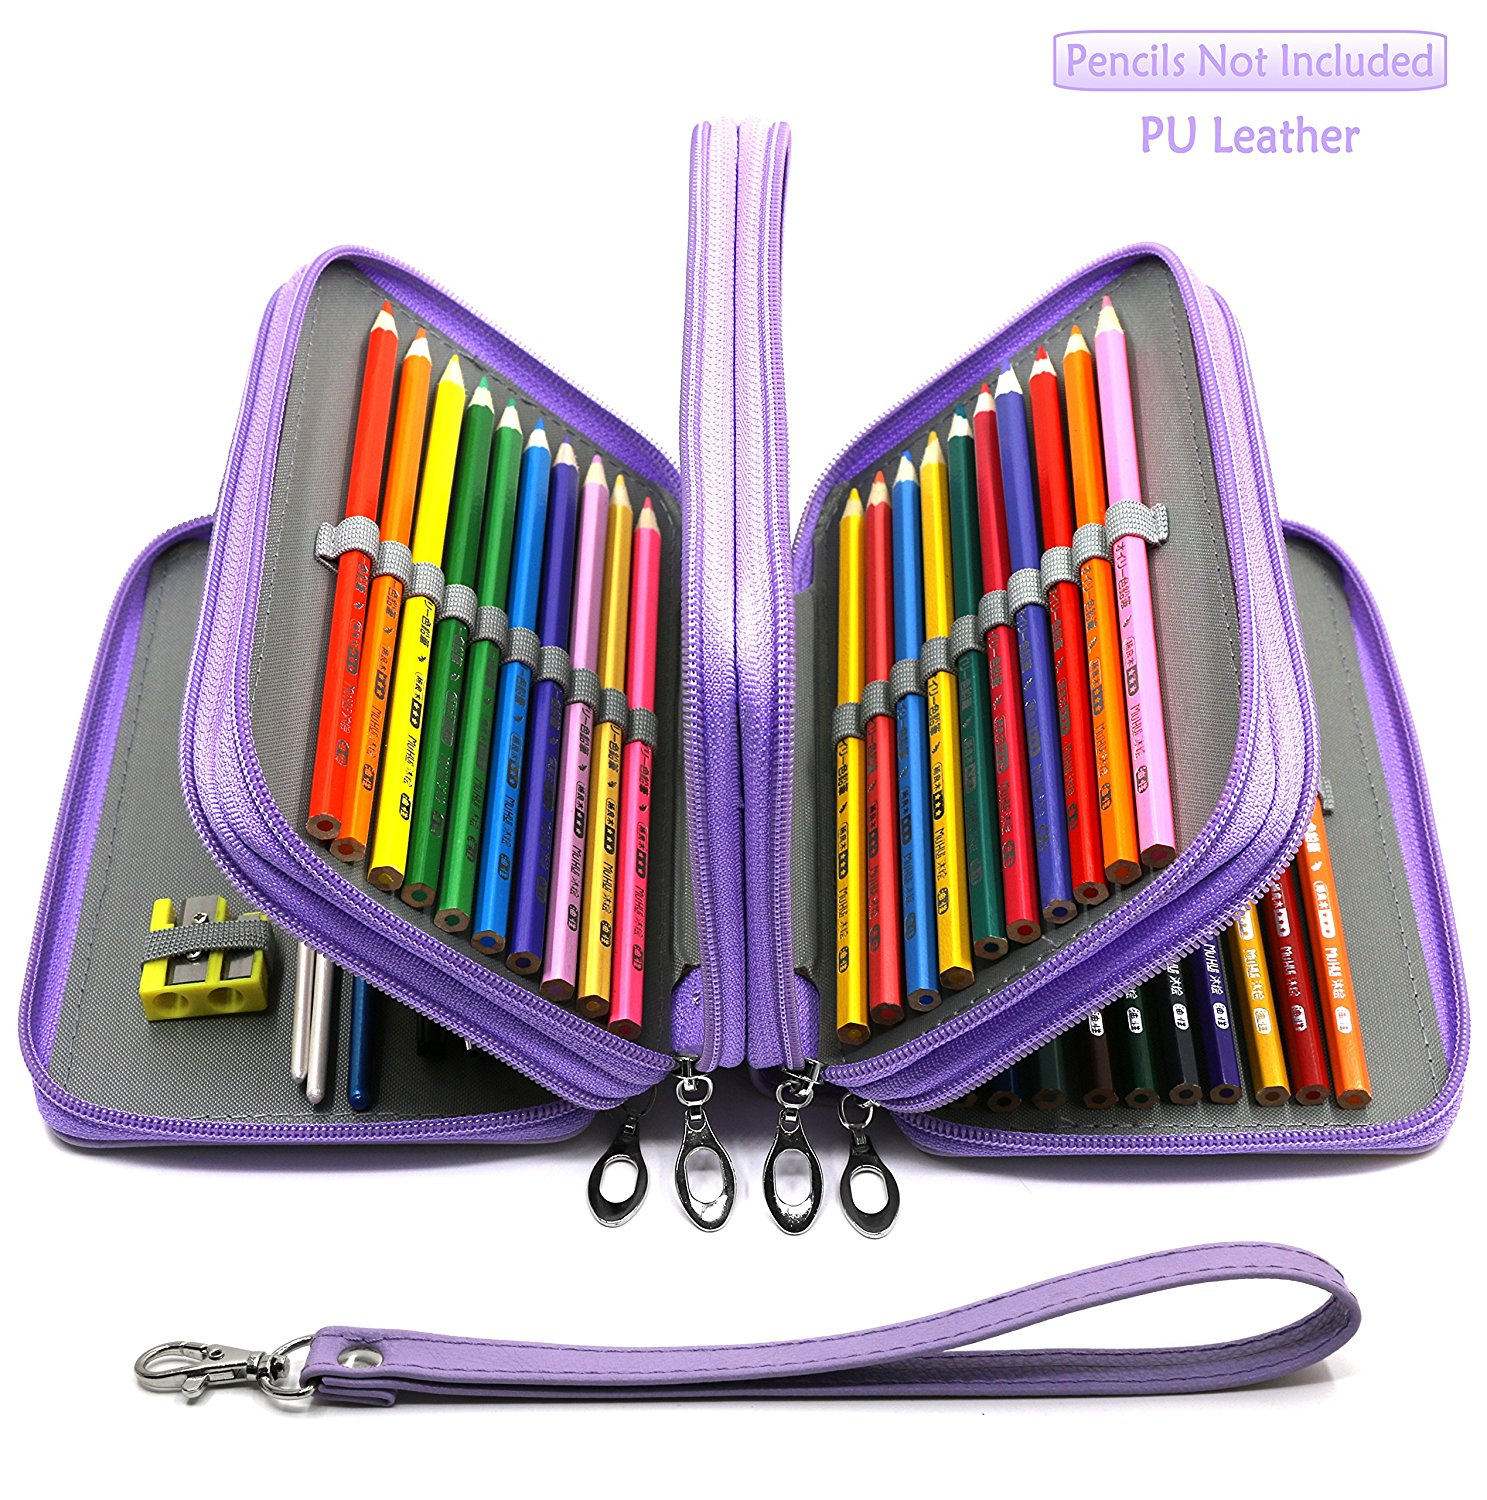 YOUSHARES 72 Slots Pencil Case - PU Leather Handy Multi-layer Large Zipper Pen Bag with Handle Strap for Colored/Watercolor Pencils, Gel Pen, Makeup Brush, Small Marker and Sharpener (Purple)